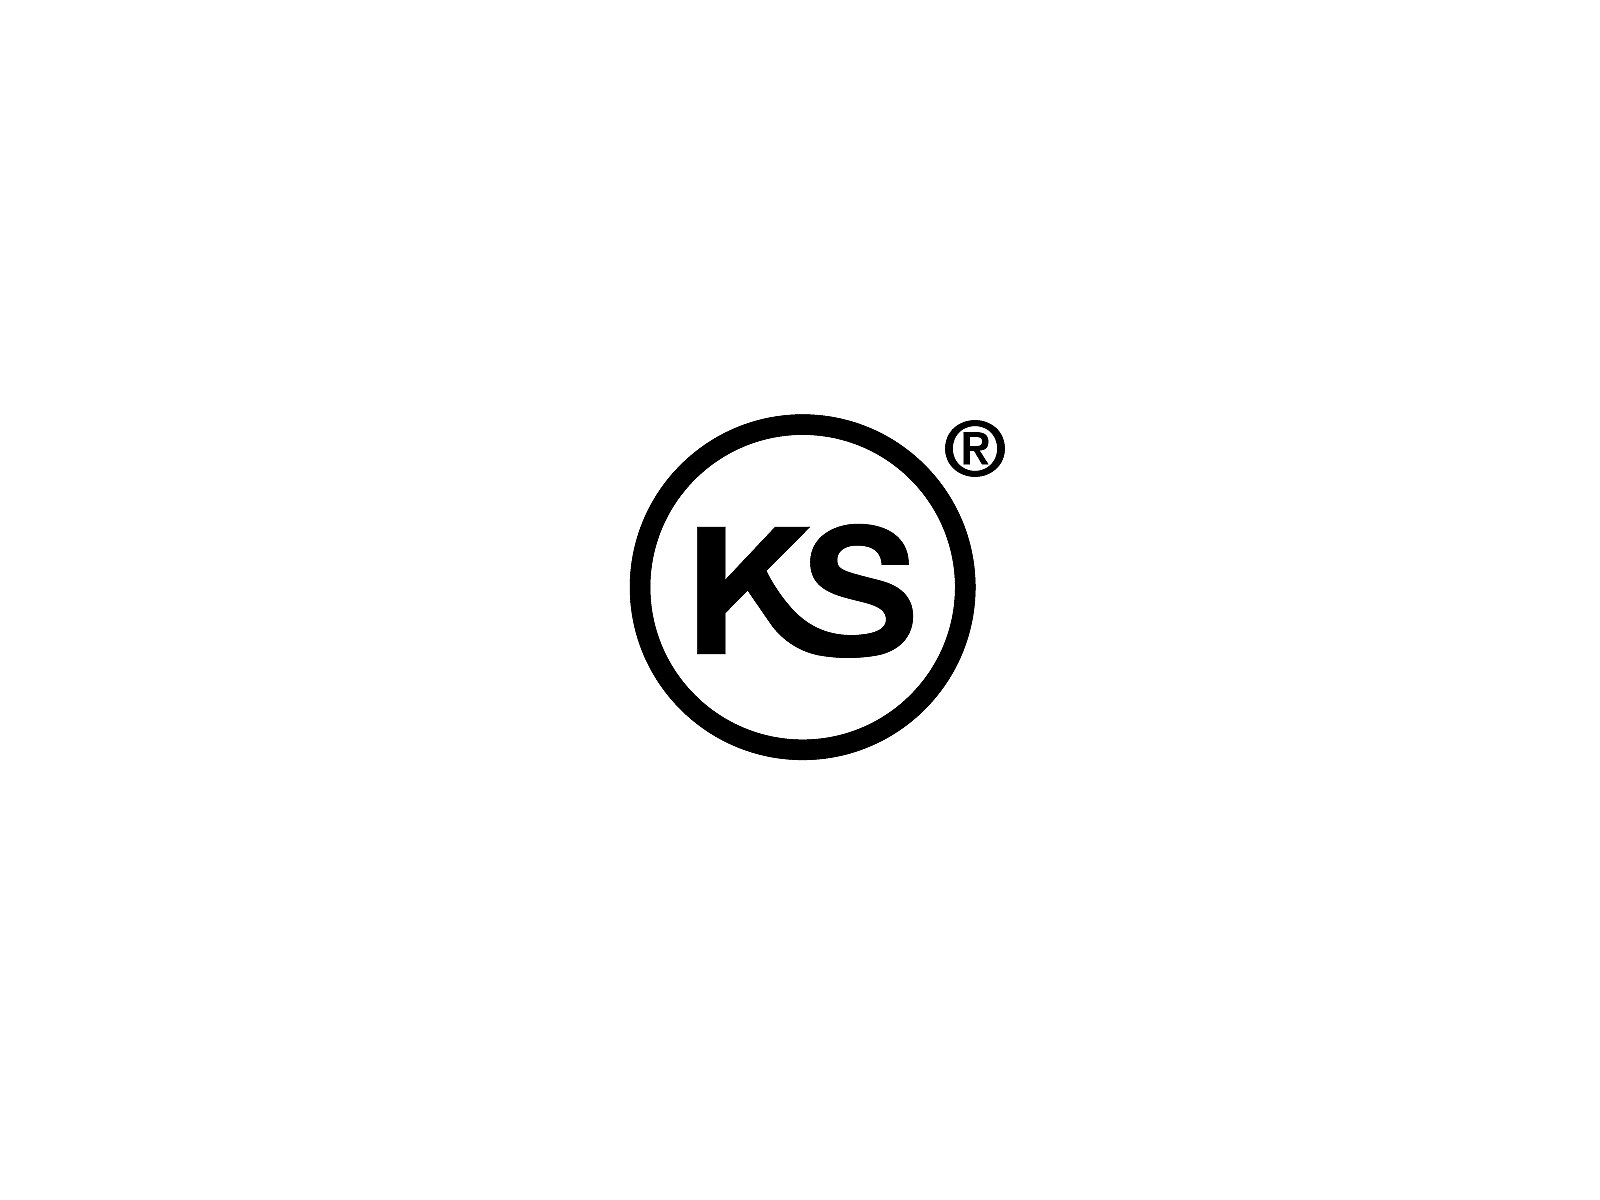 Ks Monogram Logo By Tallant Design On Dribbble